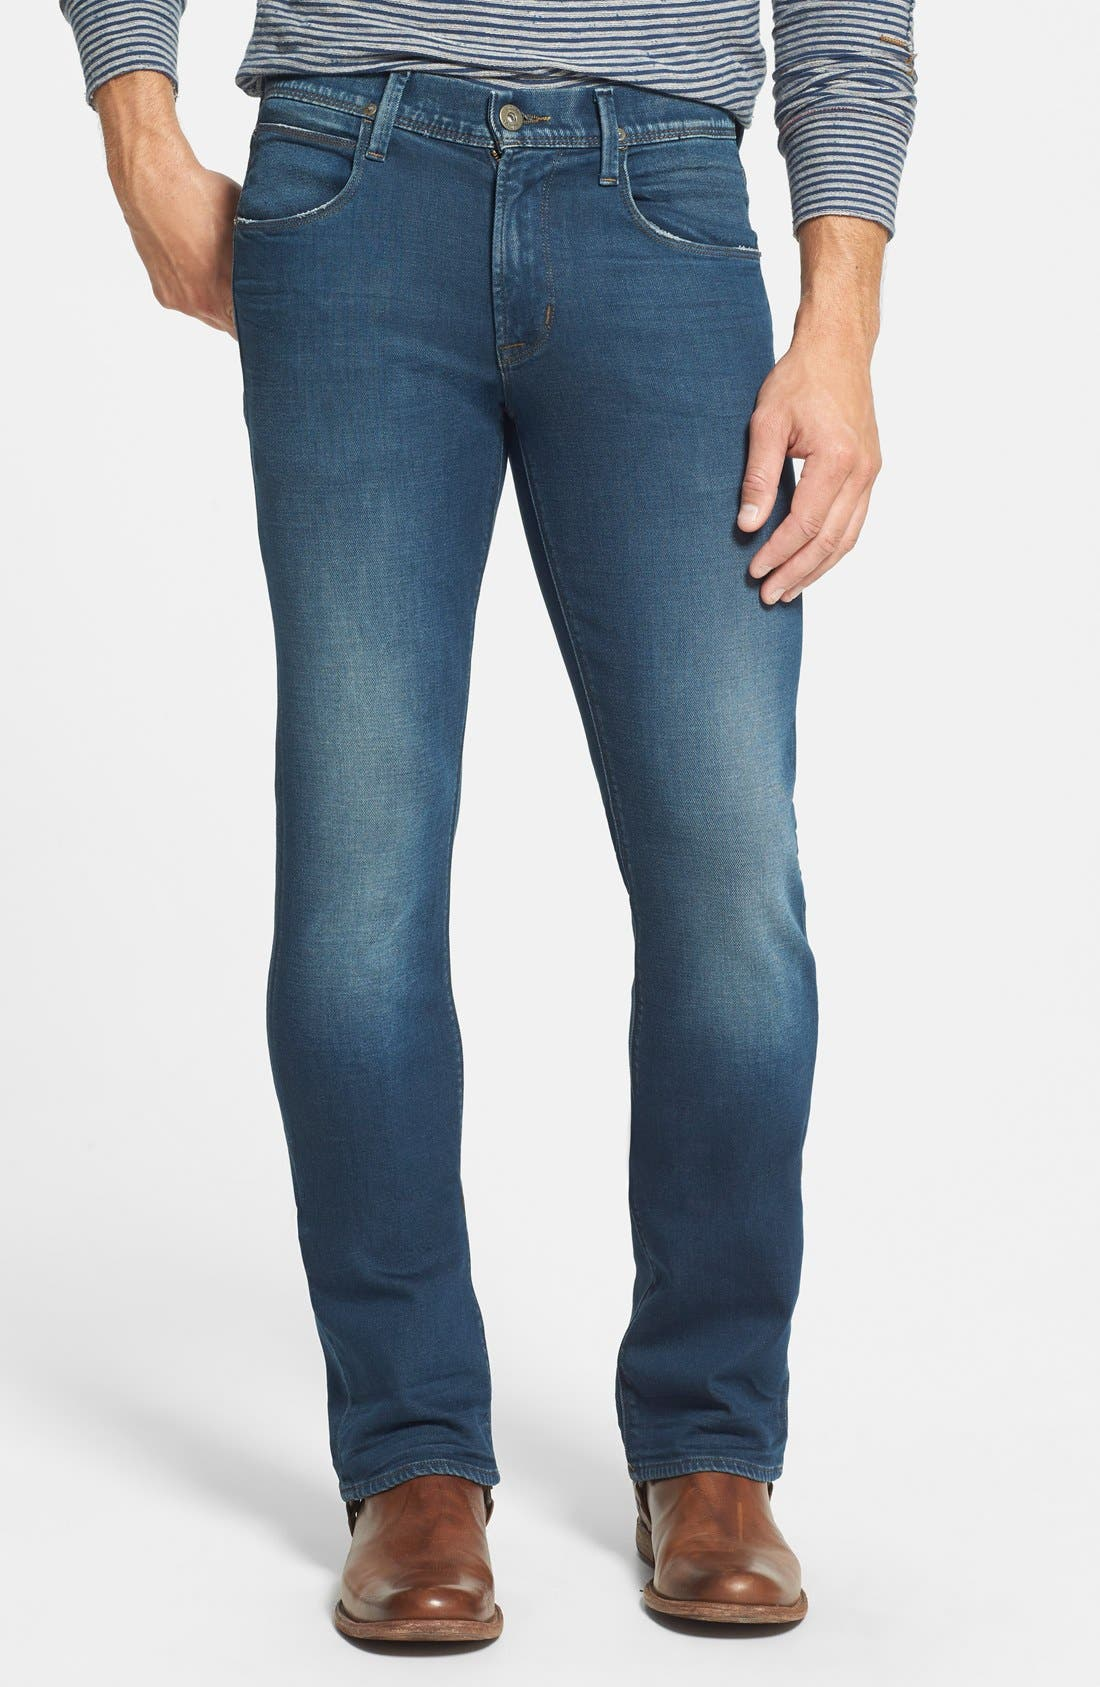 HUDSON JEANS,                             'Clifton' Bootcut Jeans,                             Main thumbnail 1, color,                             403